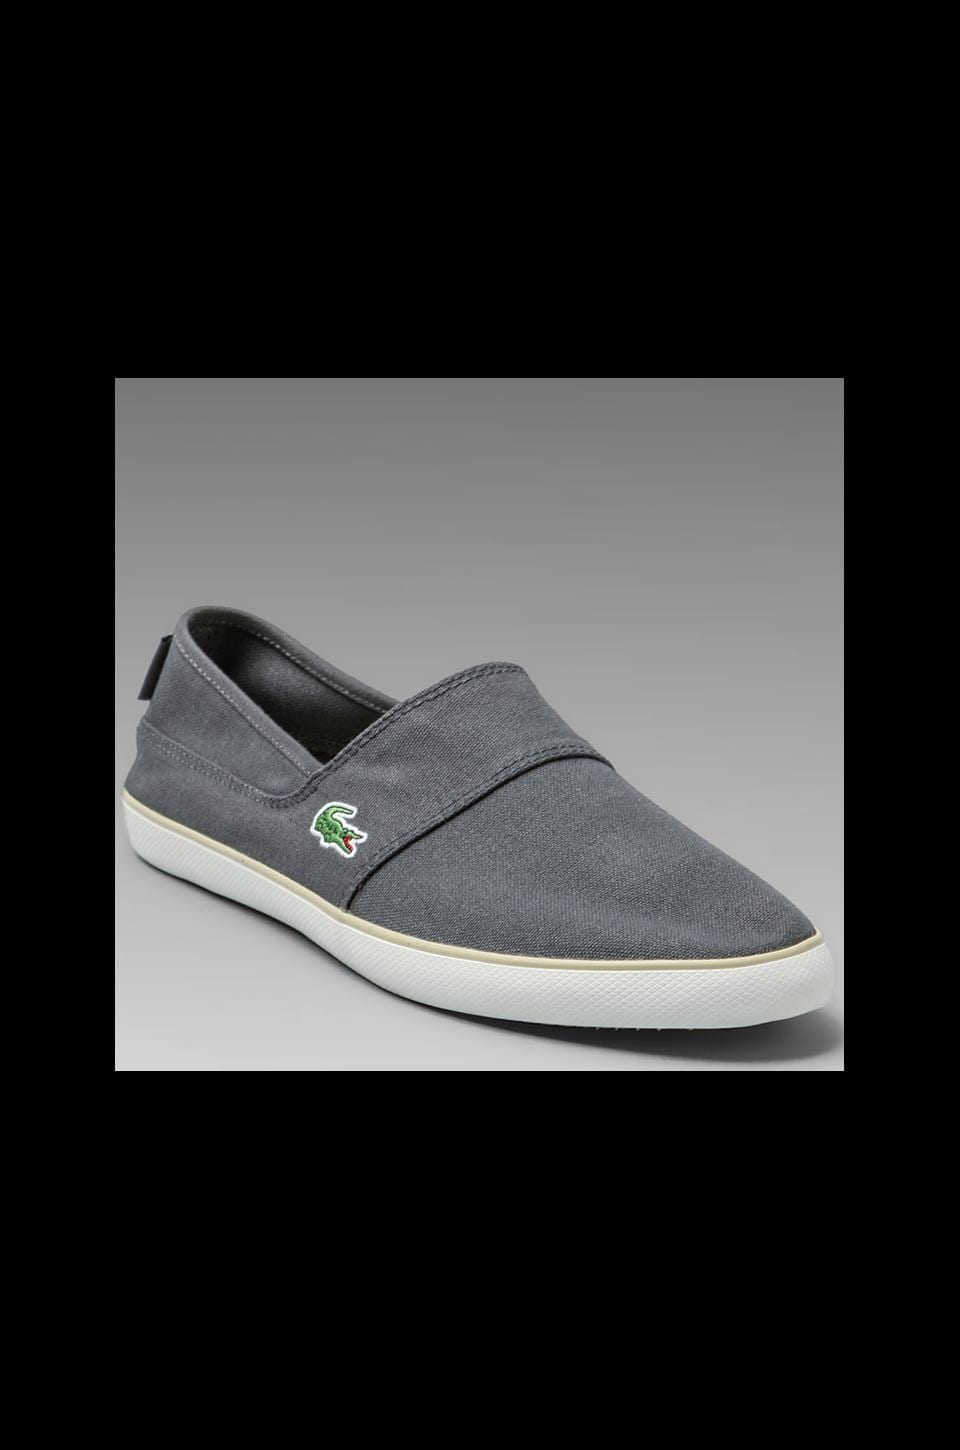 Lacoste Marice TBC in Dark Gray/Natural